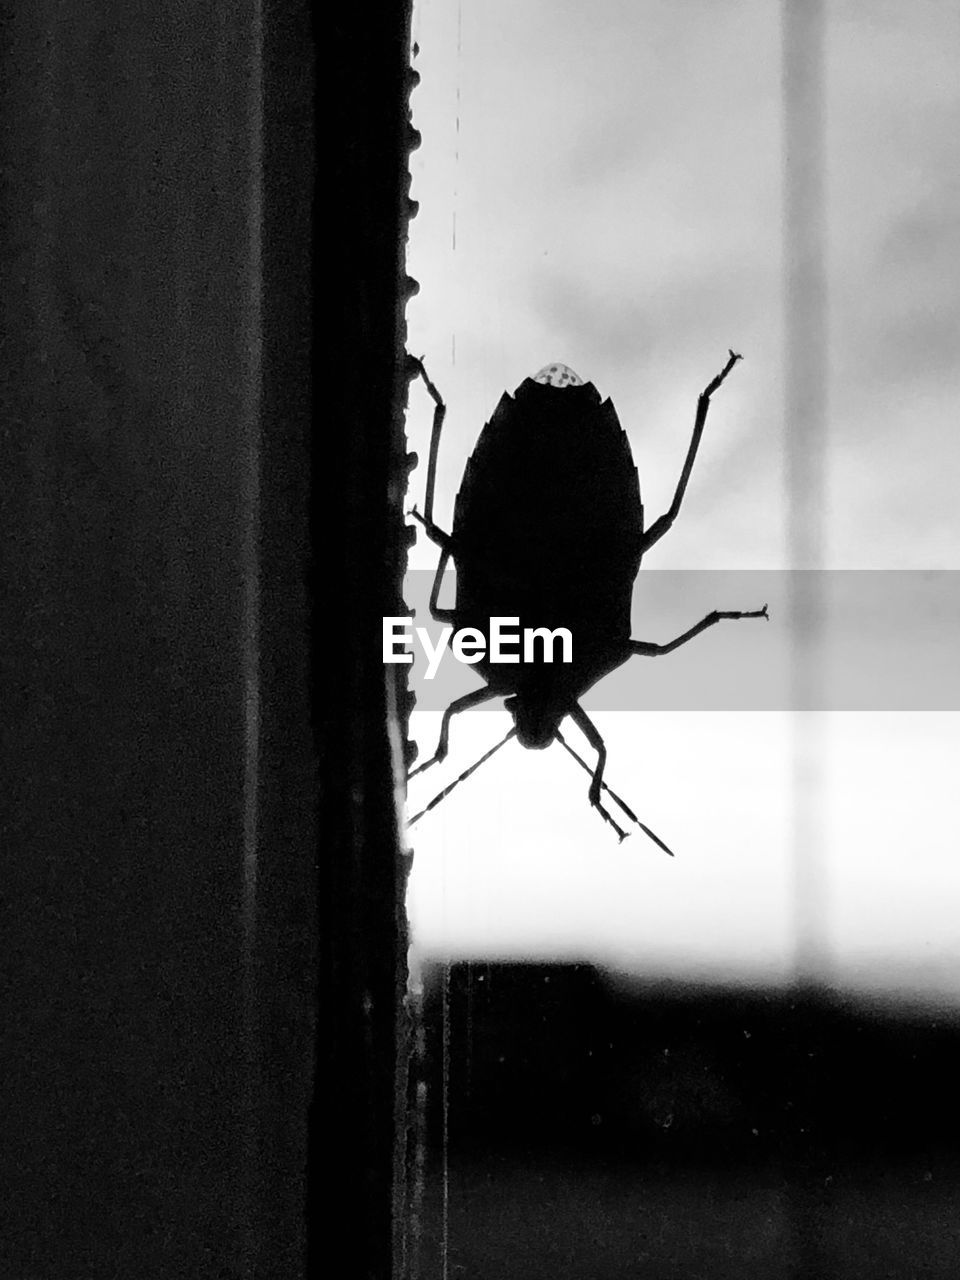 invertebrate, animal themes, animal wildlife, animal, animals in the wild, one animal, insect, close-up, window, no people, focus on foreground, glass - material, day, outdoors, nature, wall - building feature, silhouette, transparent, animal body part